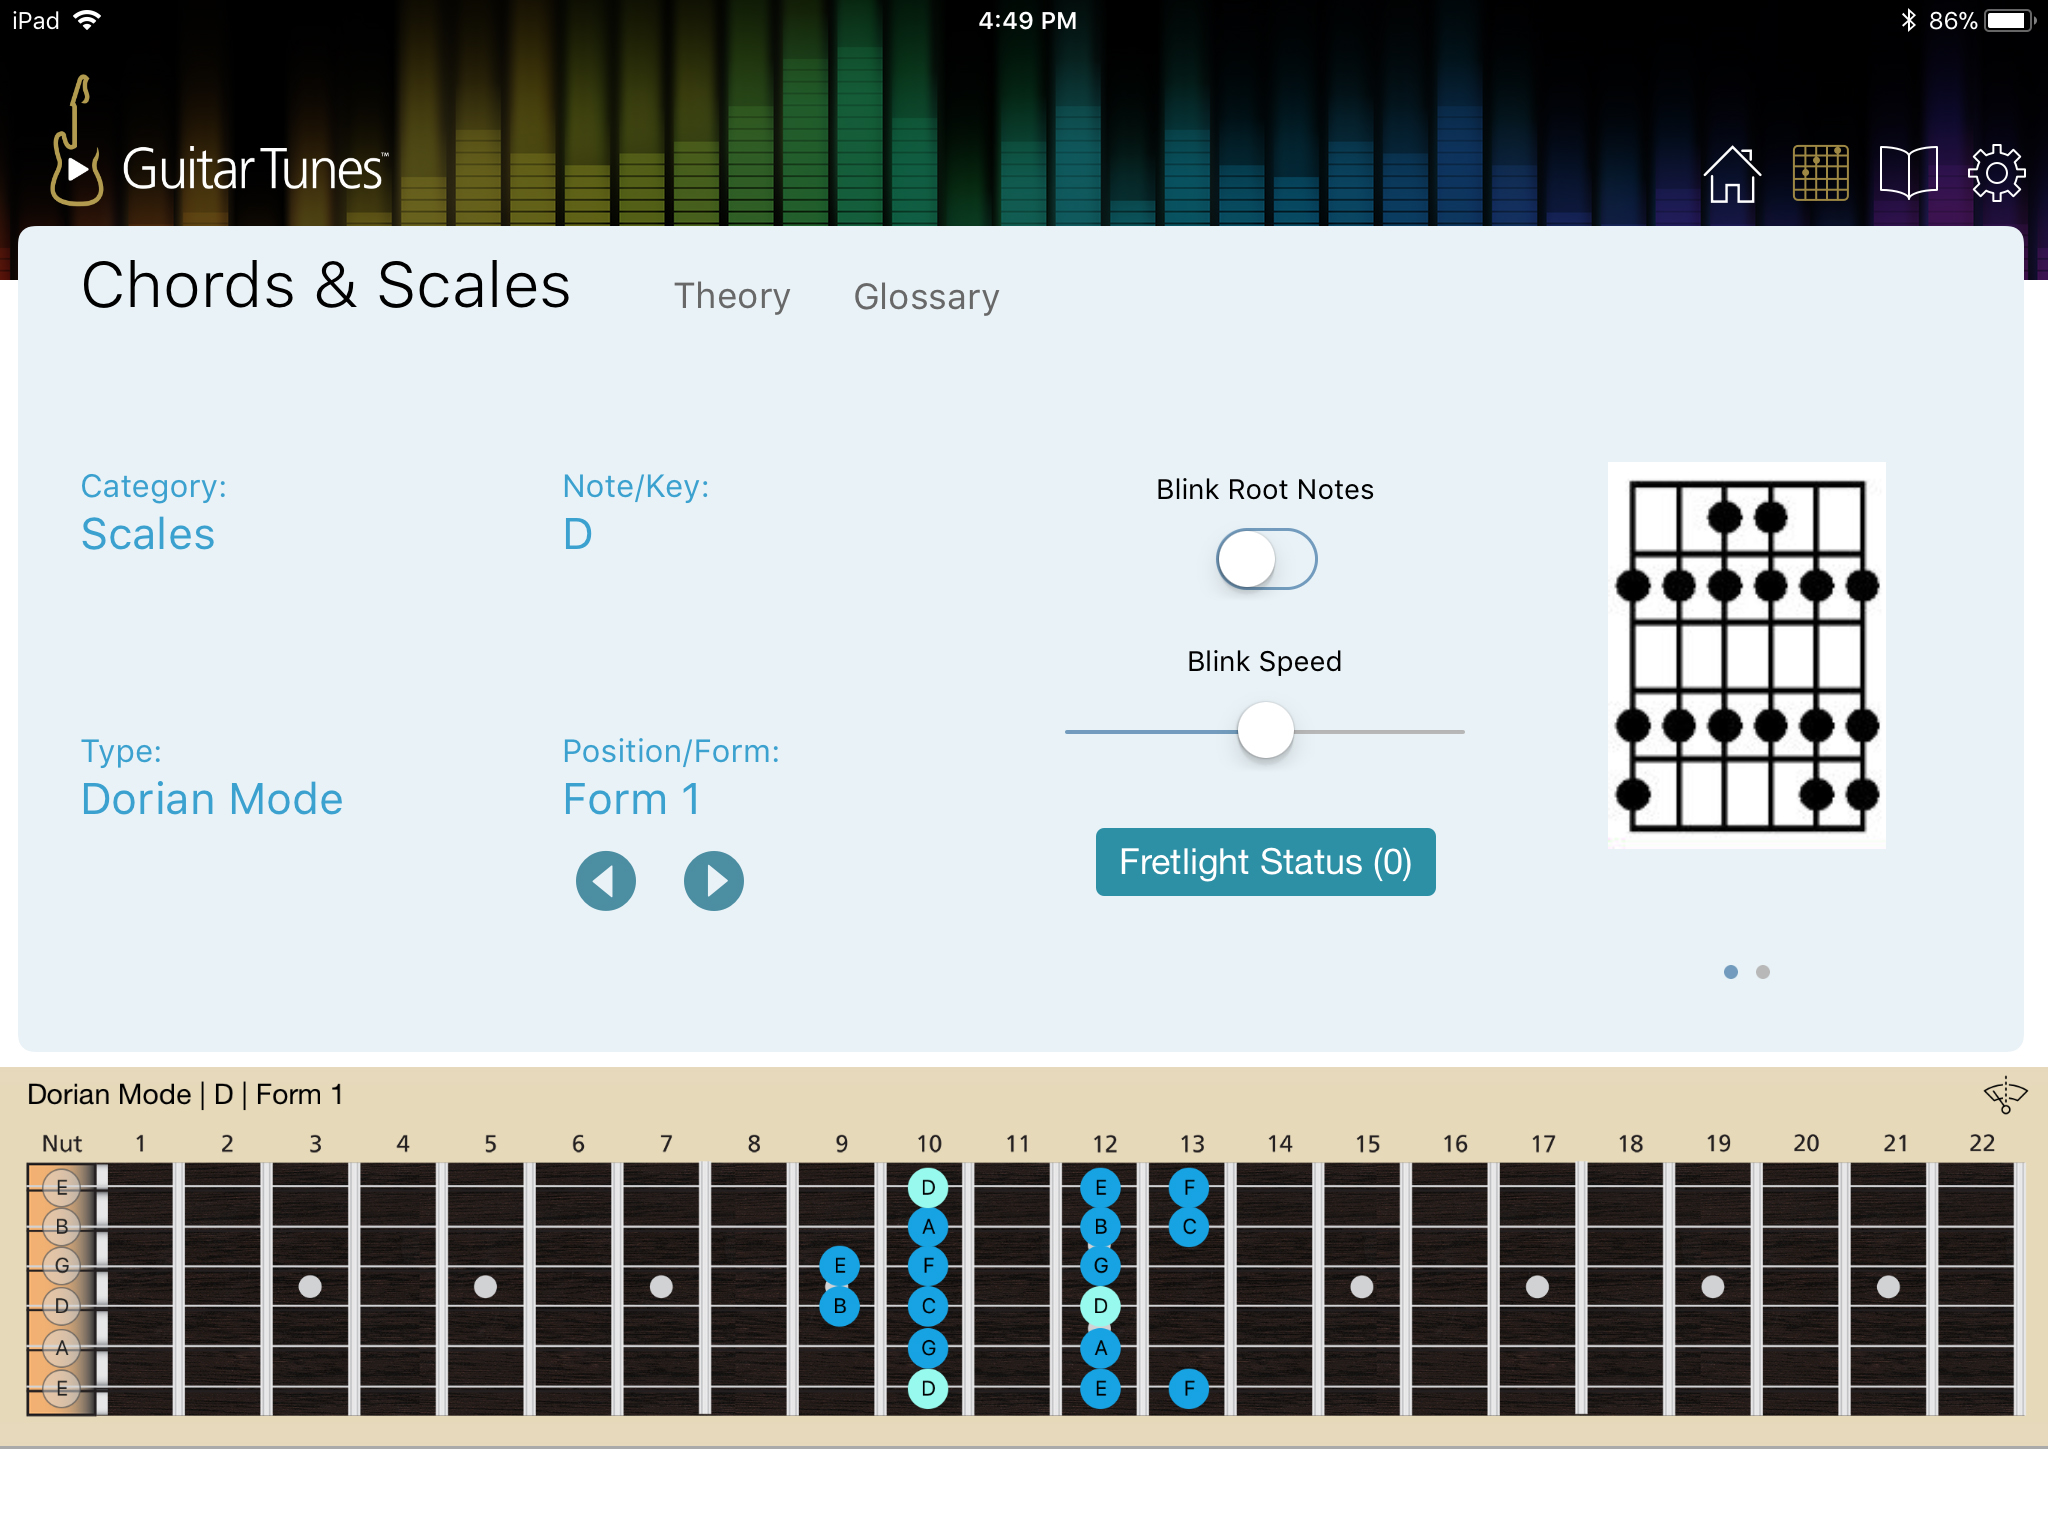 Guitar Tunes Adds New Features And Over 50 Free Interactive Guitar